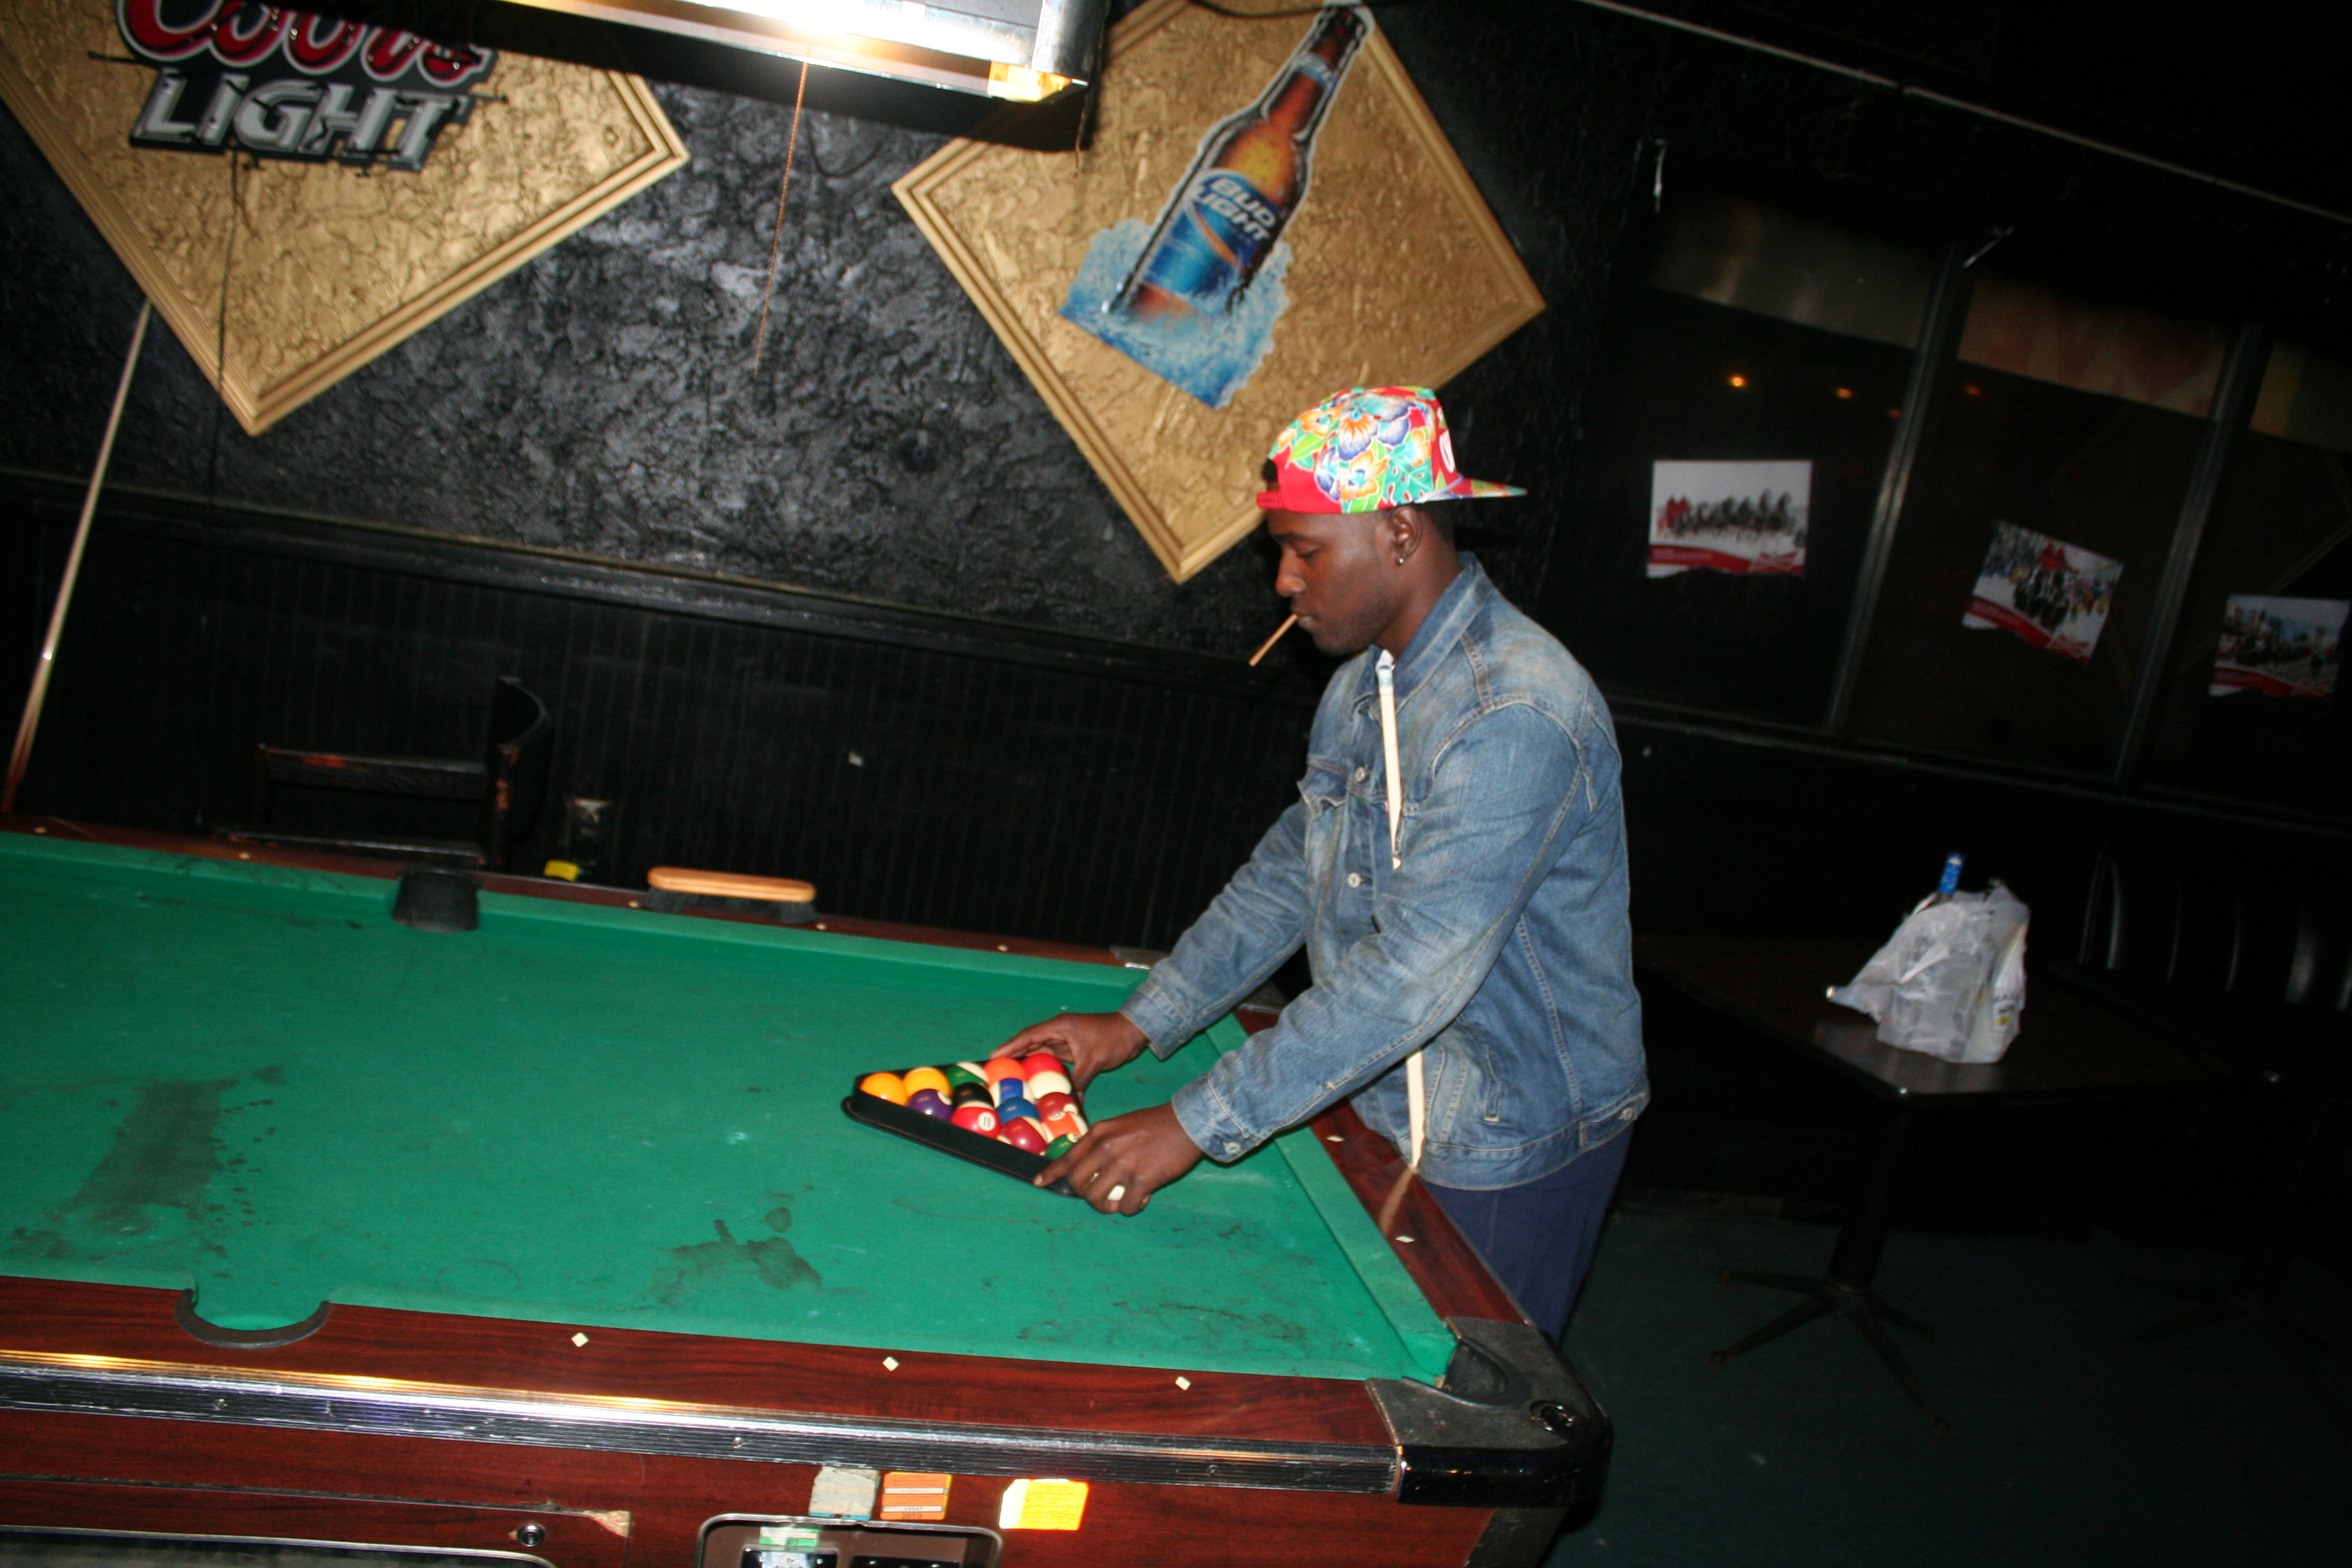 About to Play Pool (1)